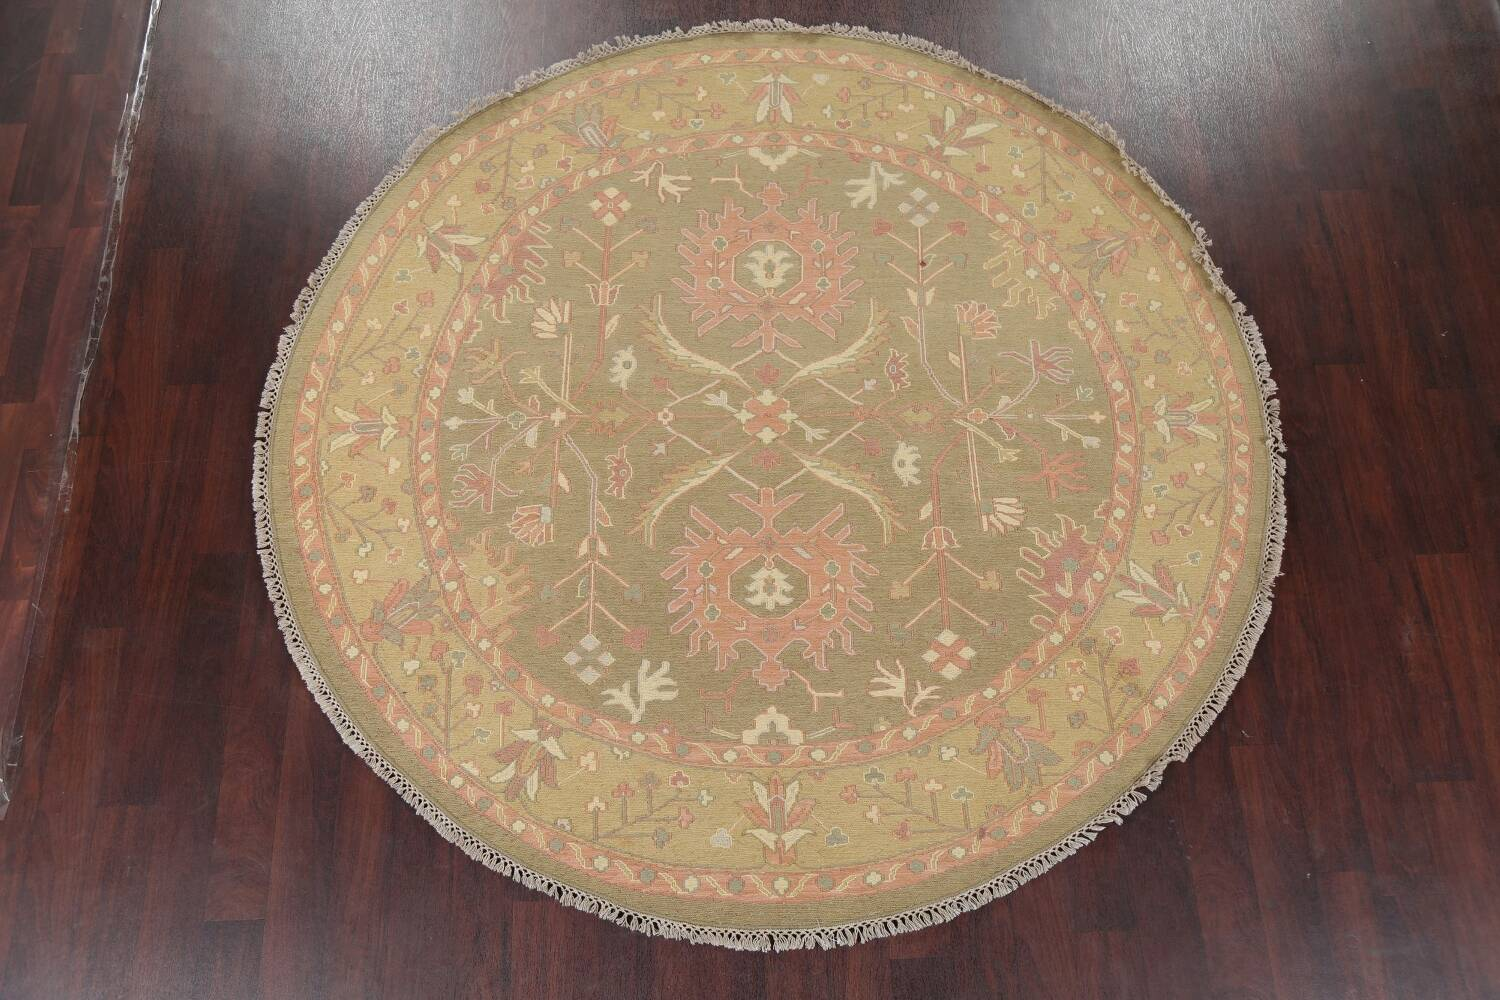 All-Over Green Floral Sumak Oriental Area Rug 8x8 Roud image 2